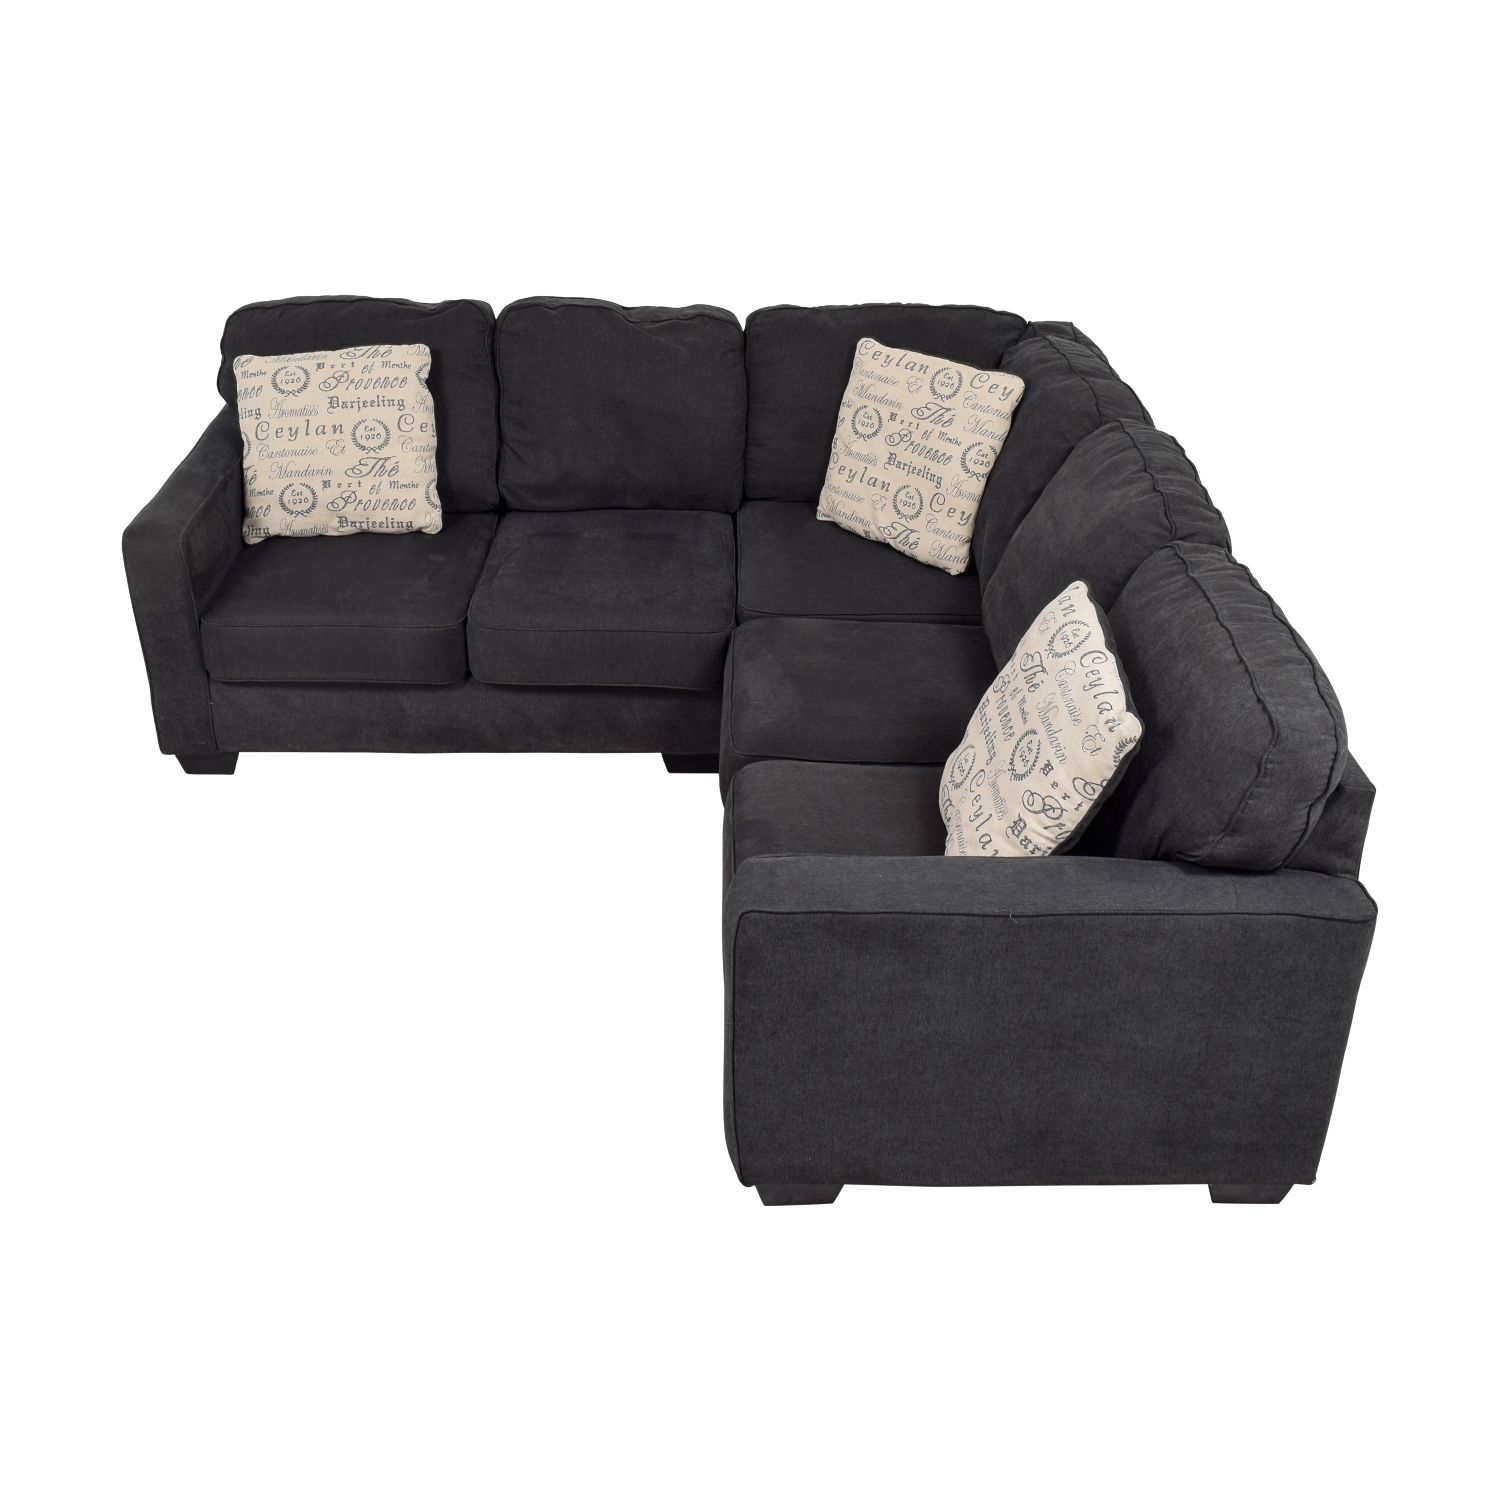 buy Ashley Furniture Alenya Black L-Shaped Sectional Ashley Furniture Sofas